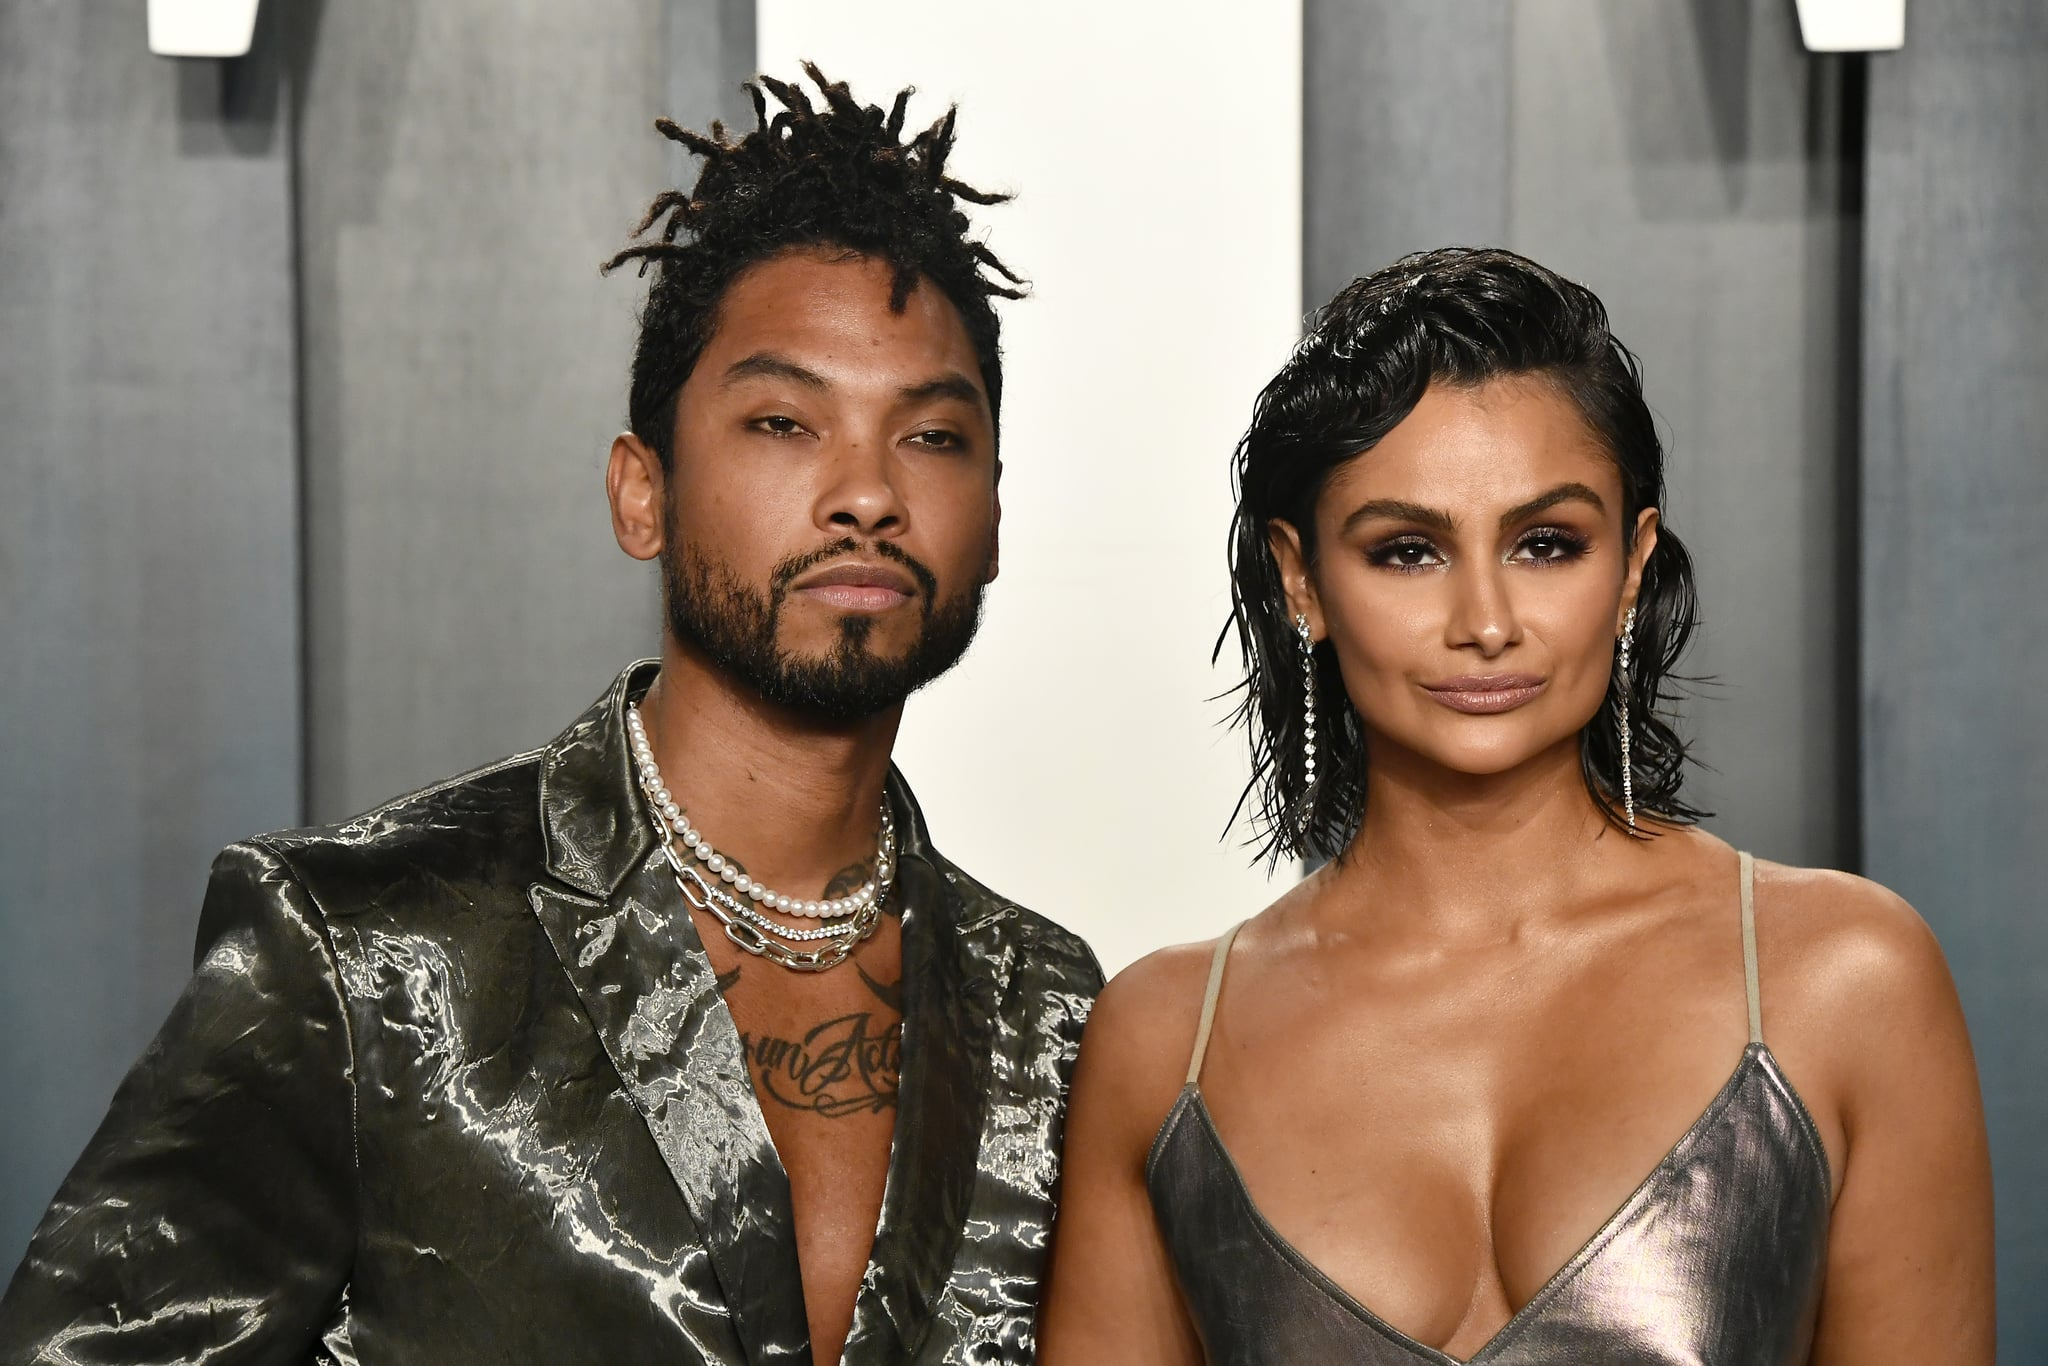 BEVERLY HILLS, CALIFORNIA - FEBRUARY 09: (L-R) Miguel and Nazanin Mandi attend the 2020 Vanity Fair Oscar Party hosted by Radhika Jones at Wallis Annenberg Centre for the Performing Arts on February 09, 2020 in Beverly Hills, California. (Photo by Frazer Harrison/Getty Images)